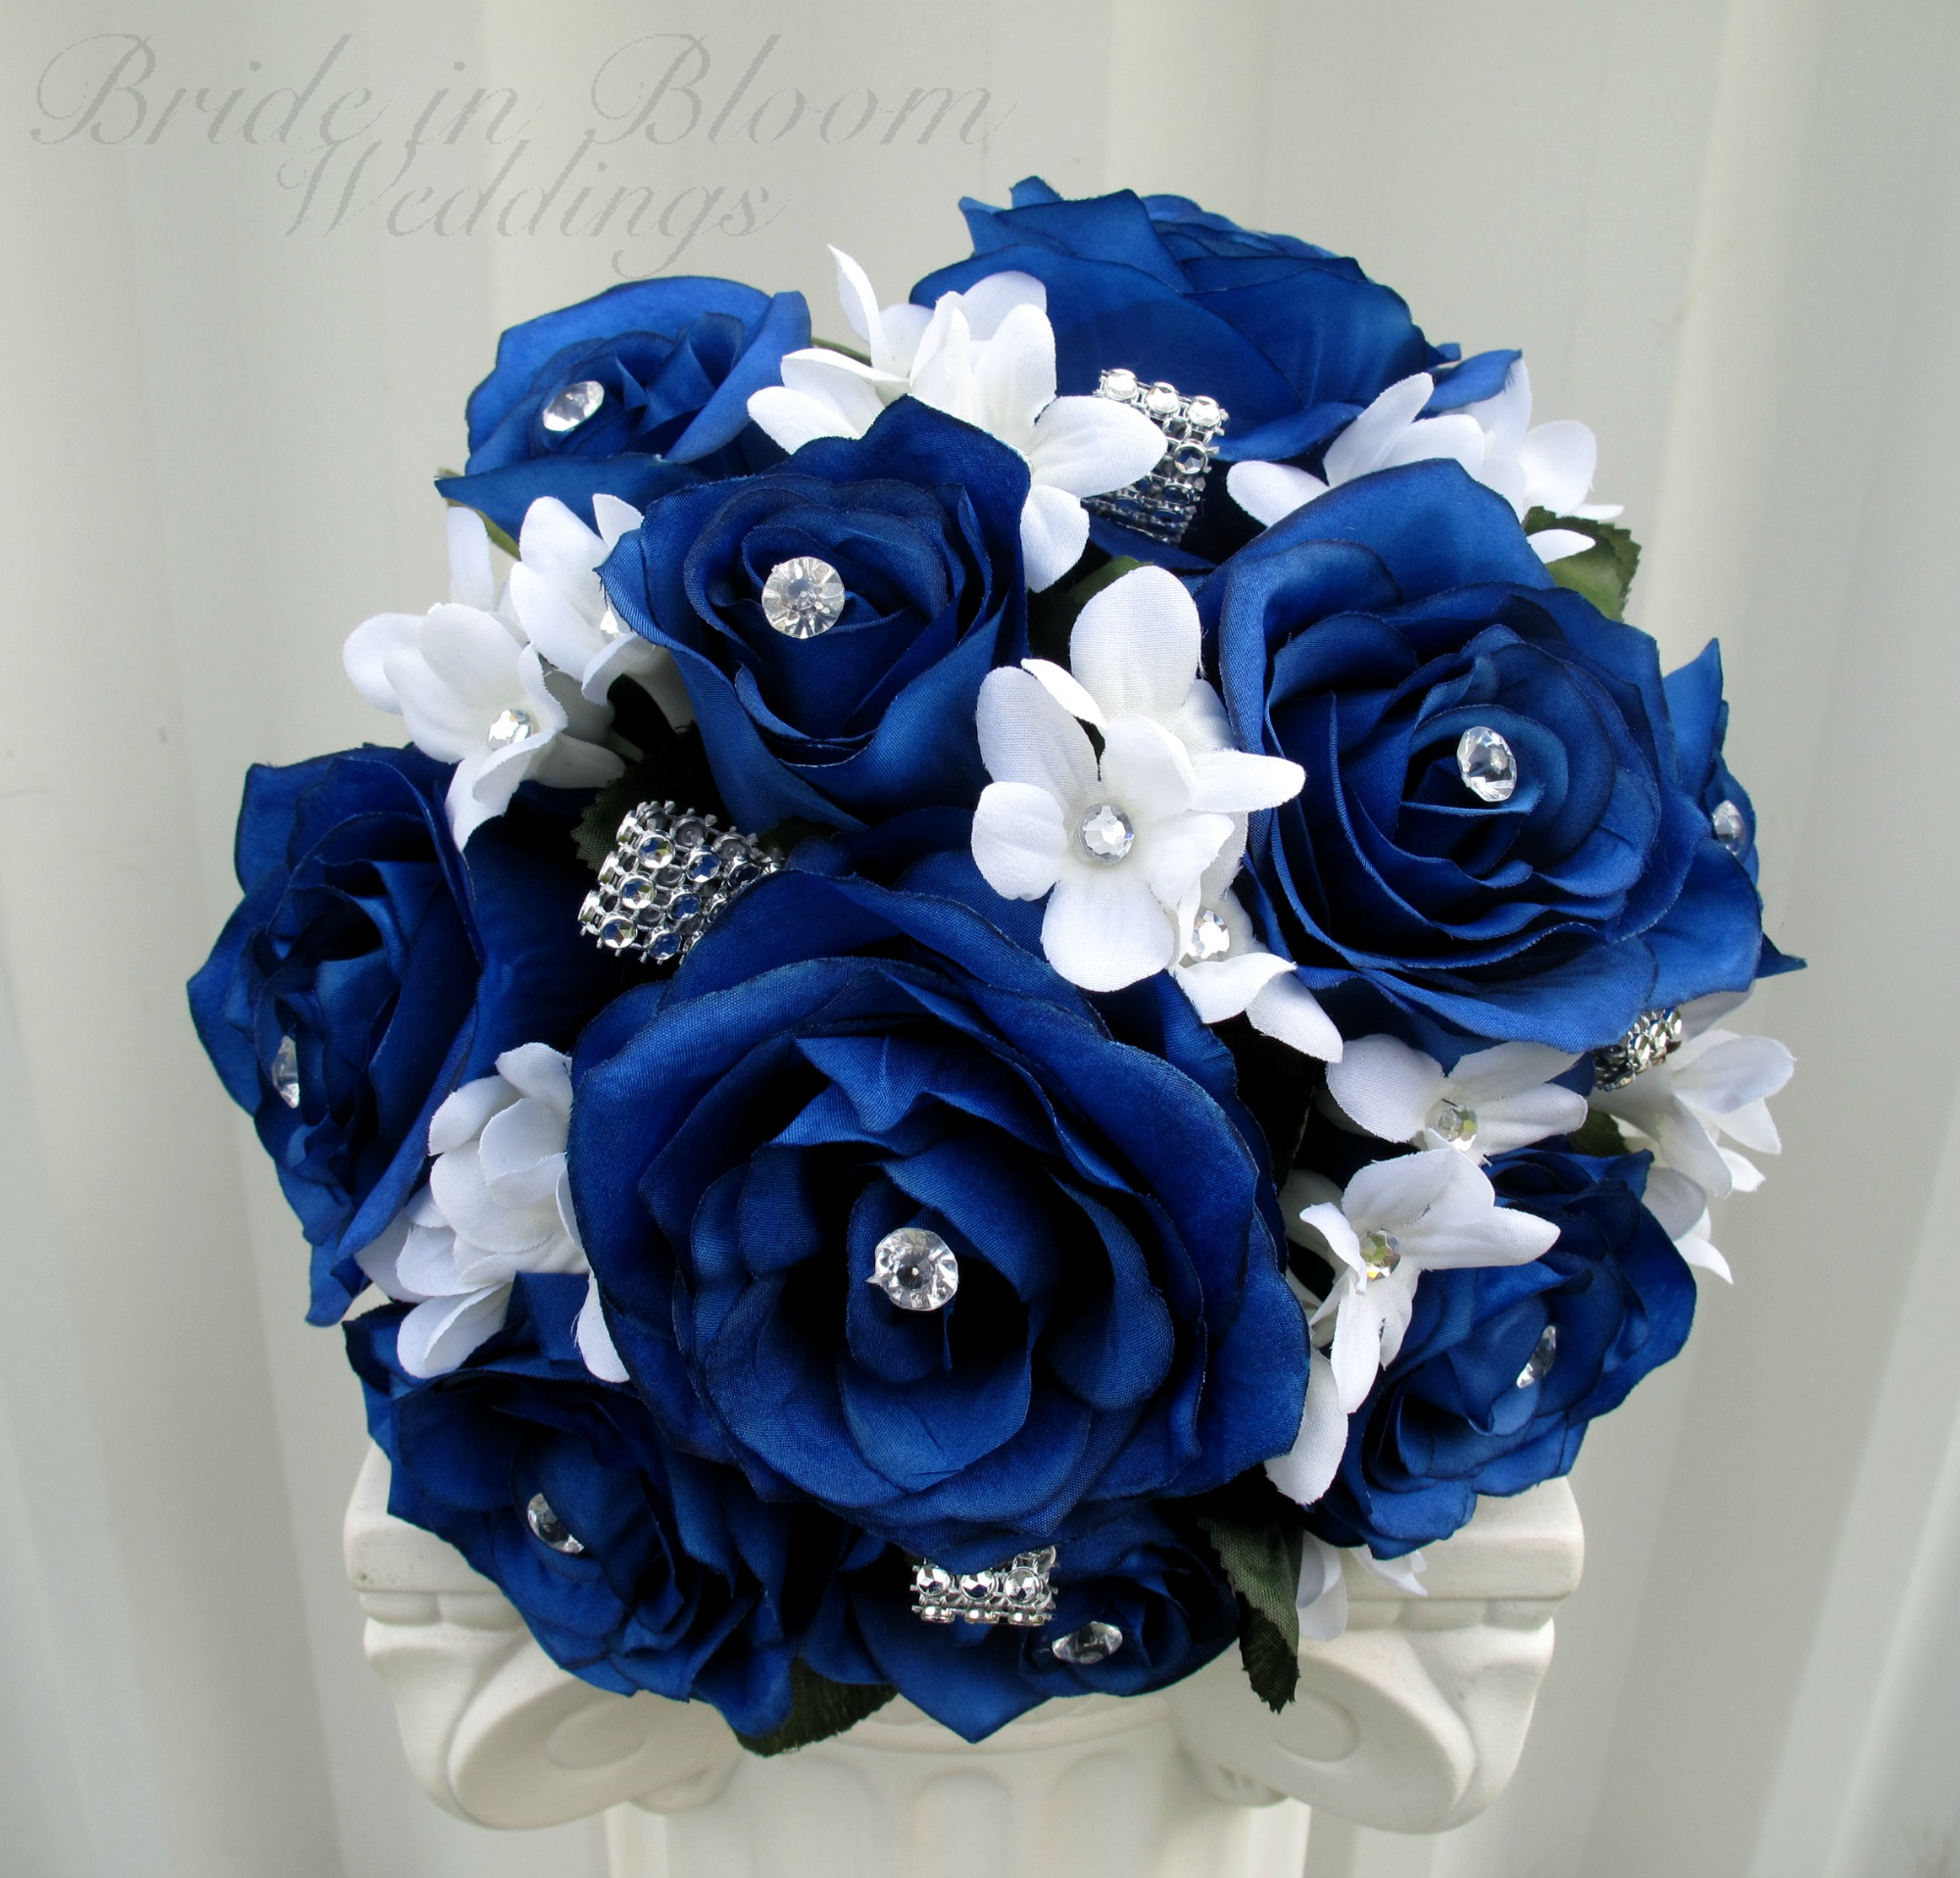 Blue rose wedding bouquet bride in bloom izmirmasajfo